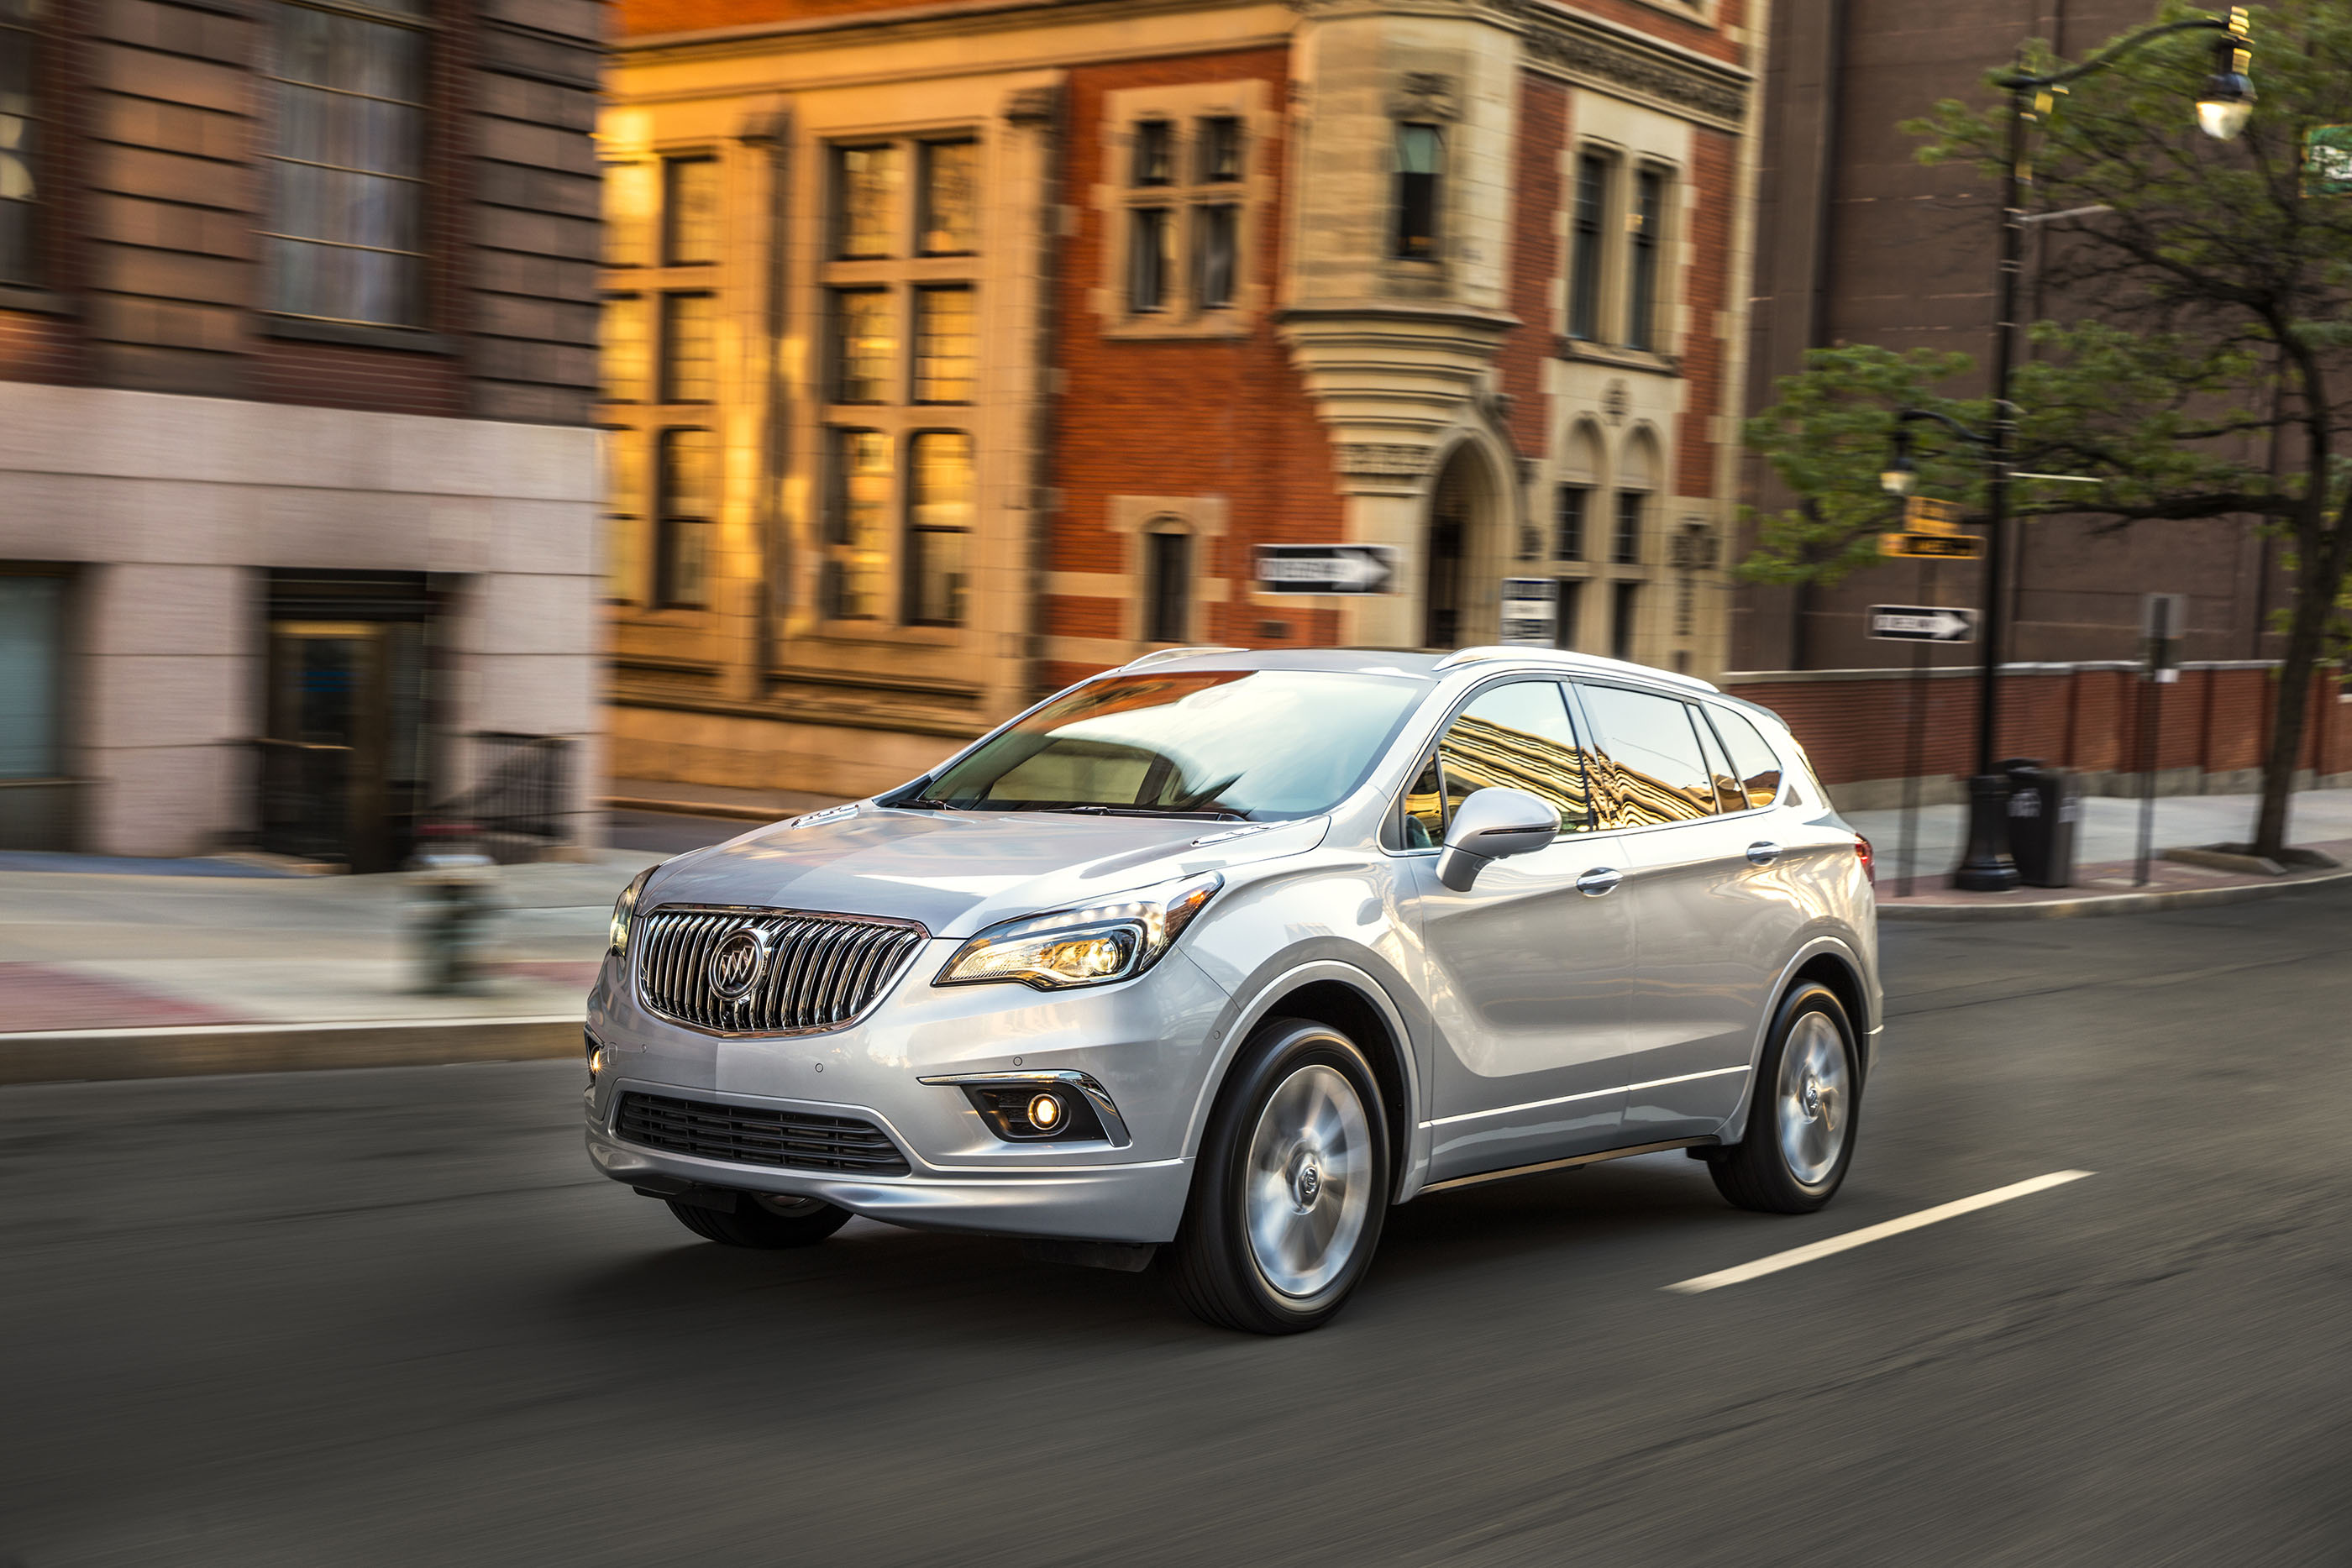 2017 Buick Envision preview